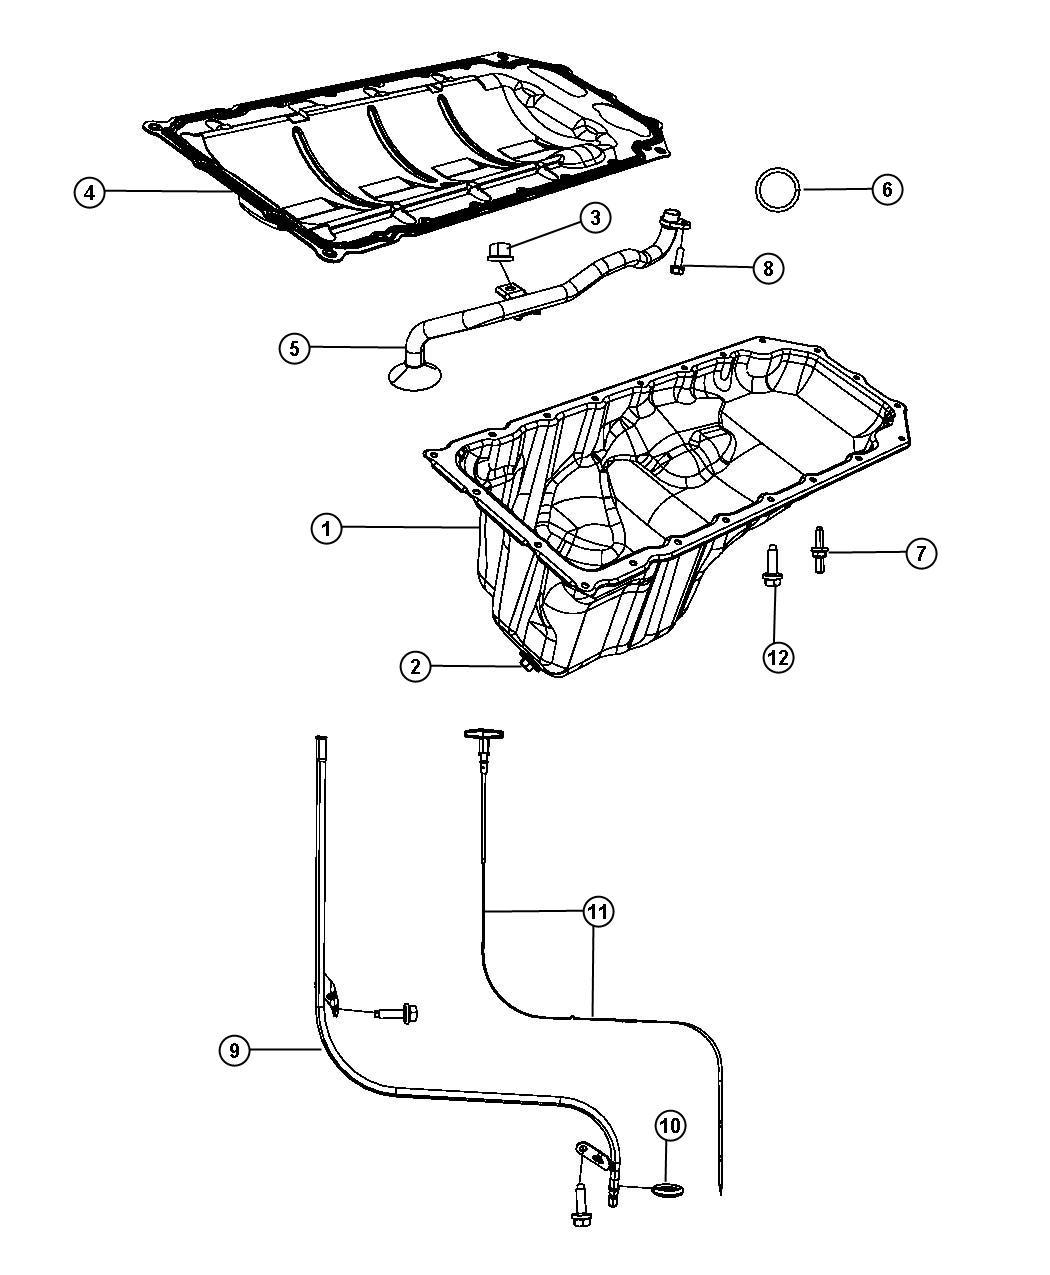 Gx 08 Dodge Caliber 2 0 Engine Diagram Wiring Diagram